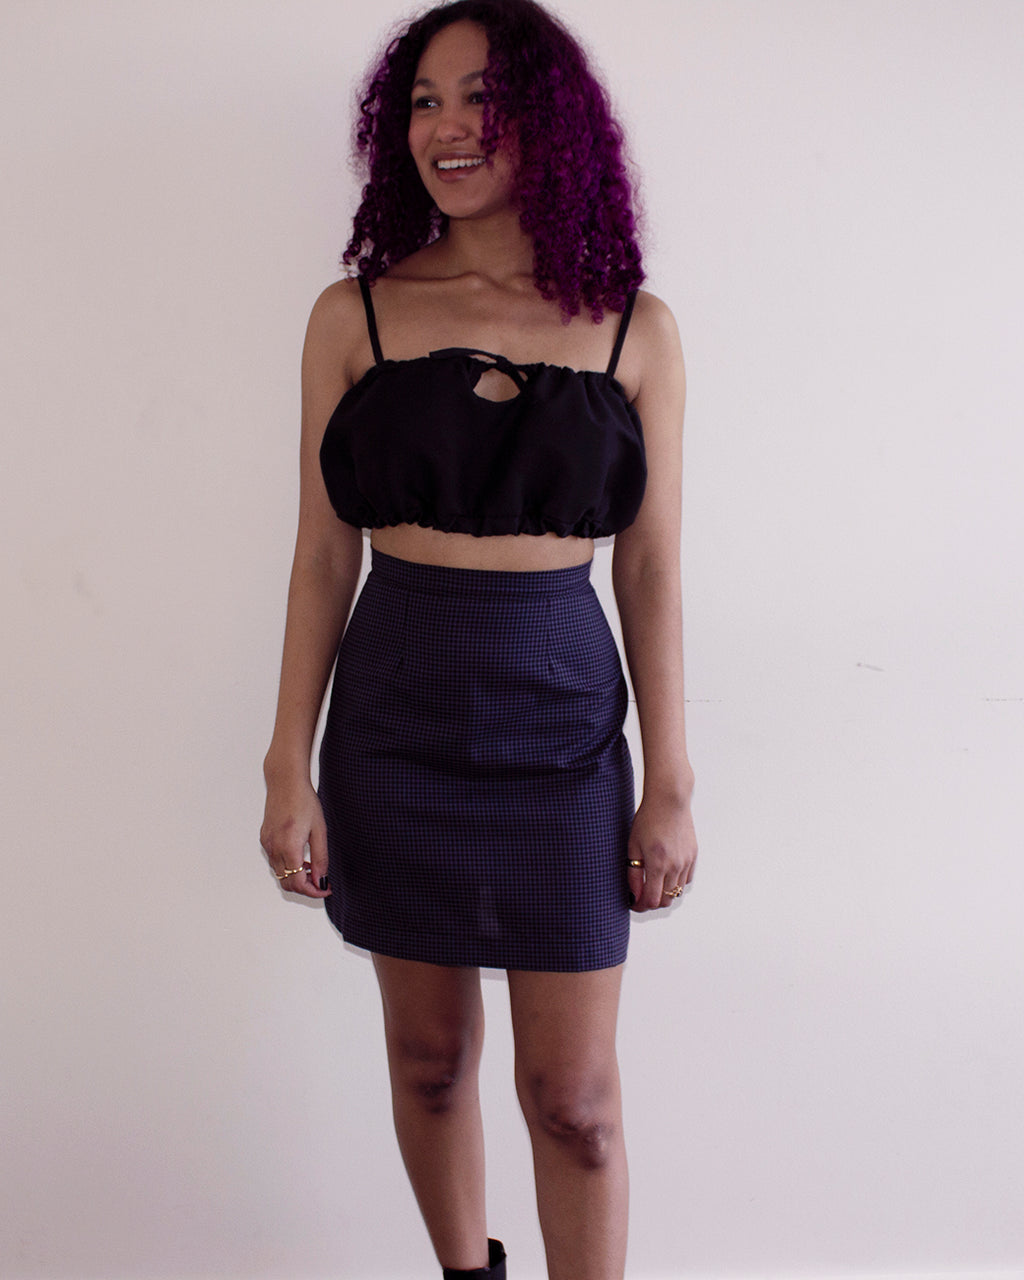 Crescent Top| Black bra top with elastic waistband